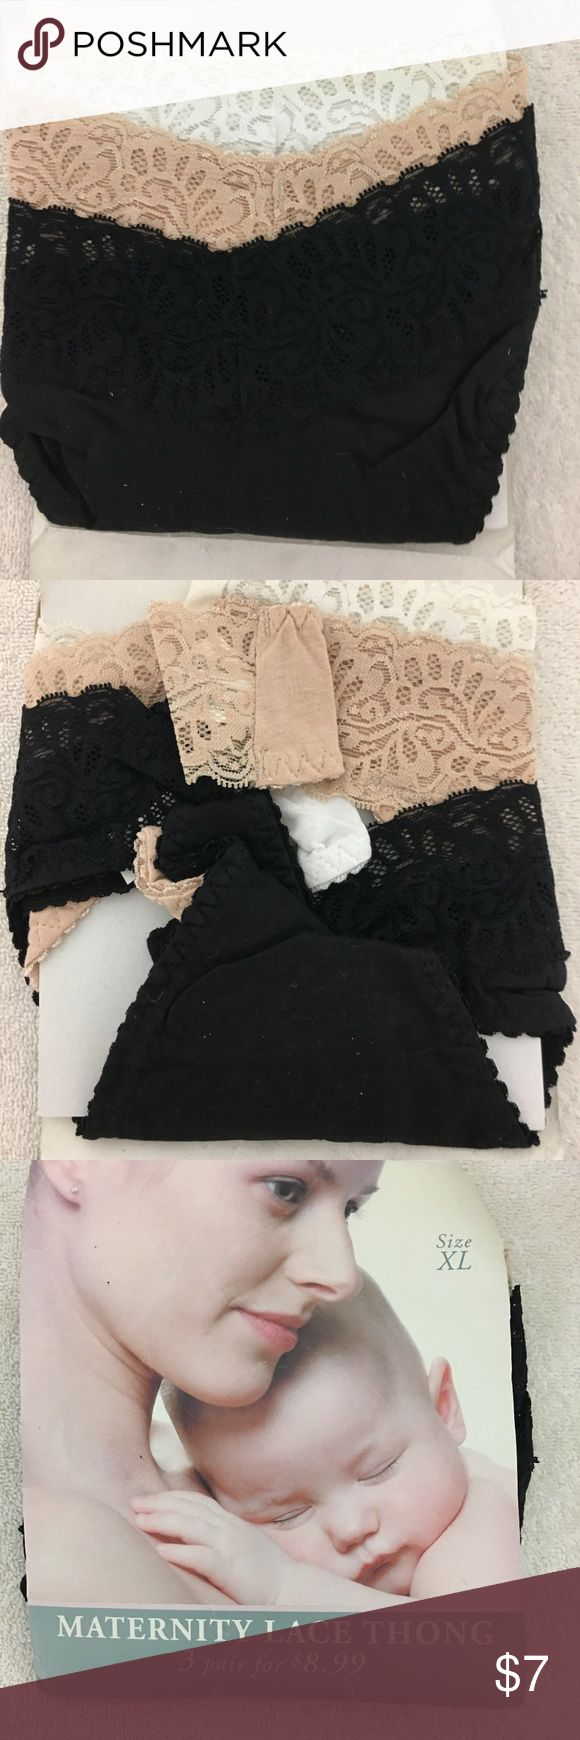 New 3-Pack Ashley Taylor Maternity Thongs Lace XL New Ashley Taylor Maternity Thongs, Set of 3, never worn.  Colors: White, Black & Nude. Lace Trim Detail.  Pretty. Ashley Taylor Intimates & Sleepwear Panties